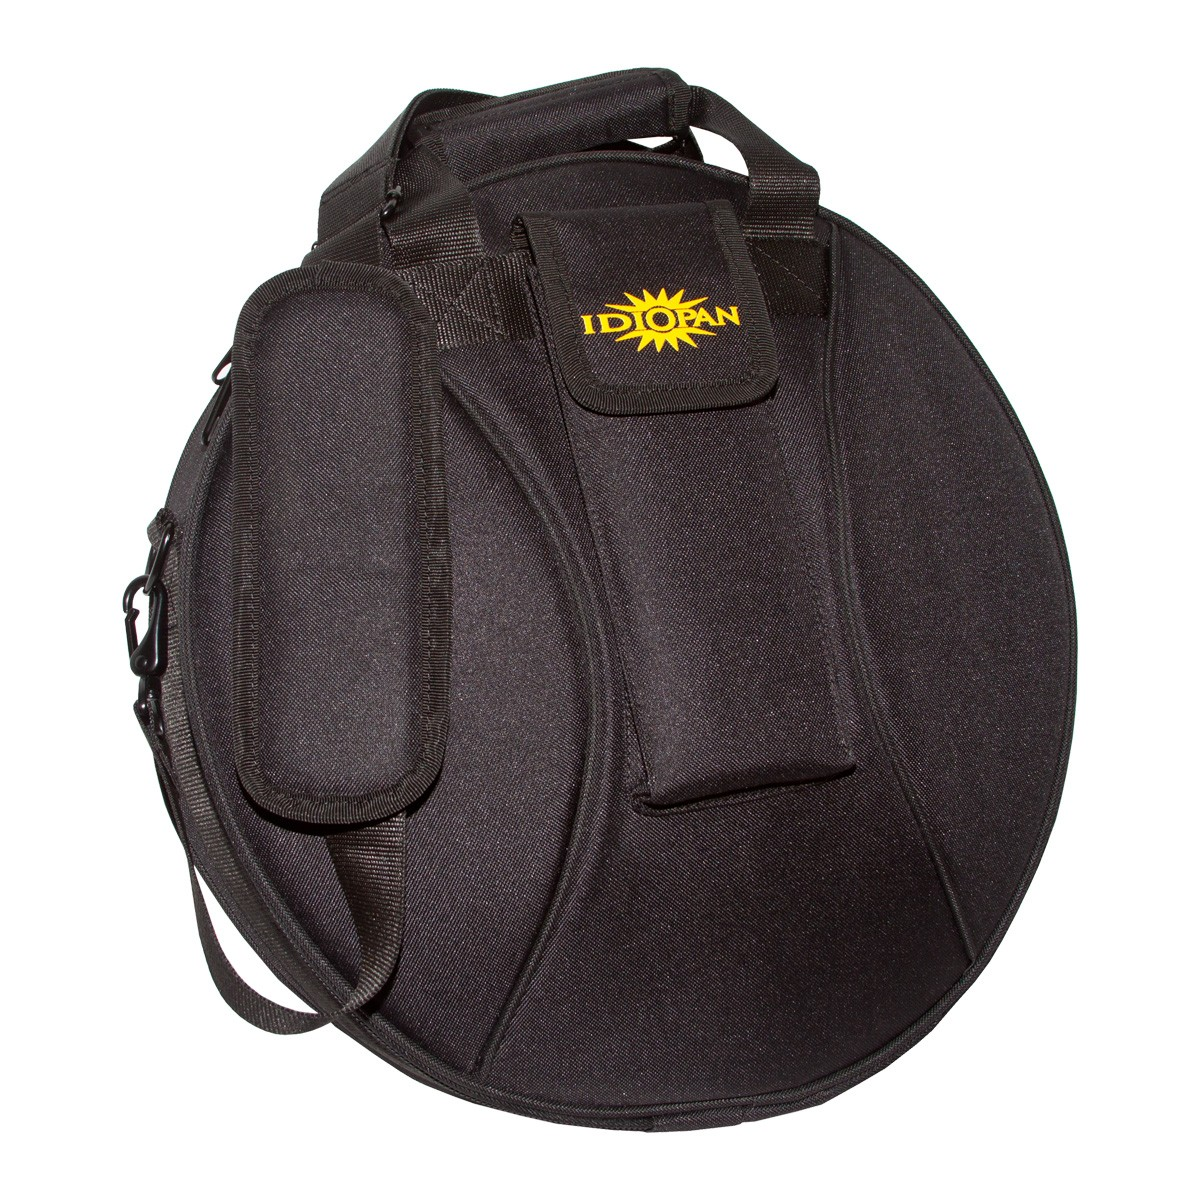 Idiopan 14-Inch Padded Gig Bag